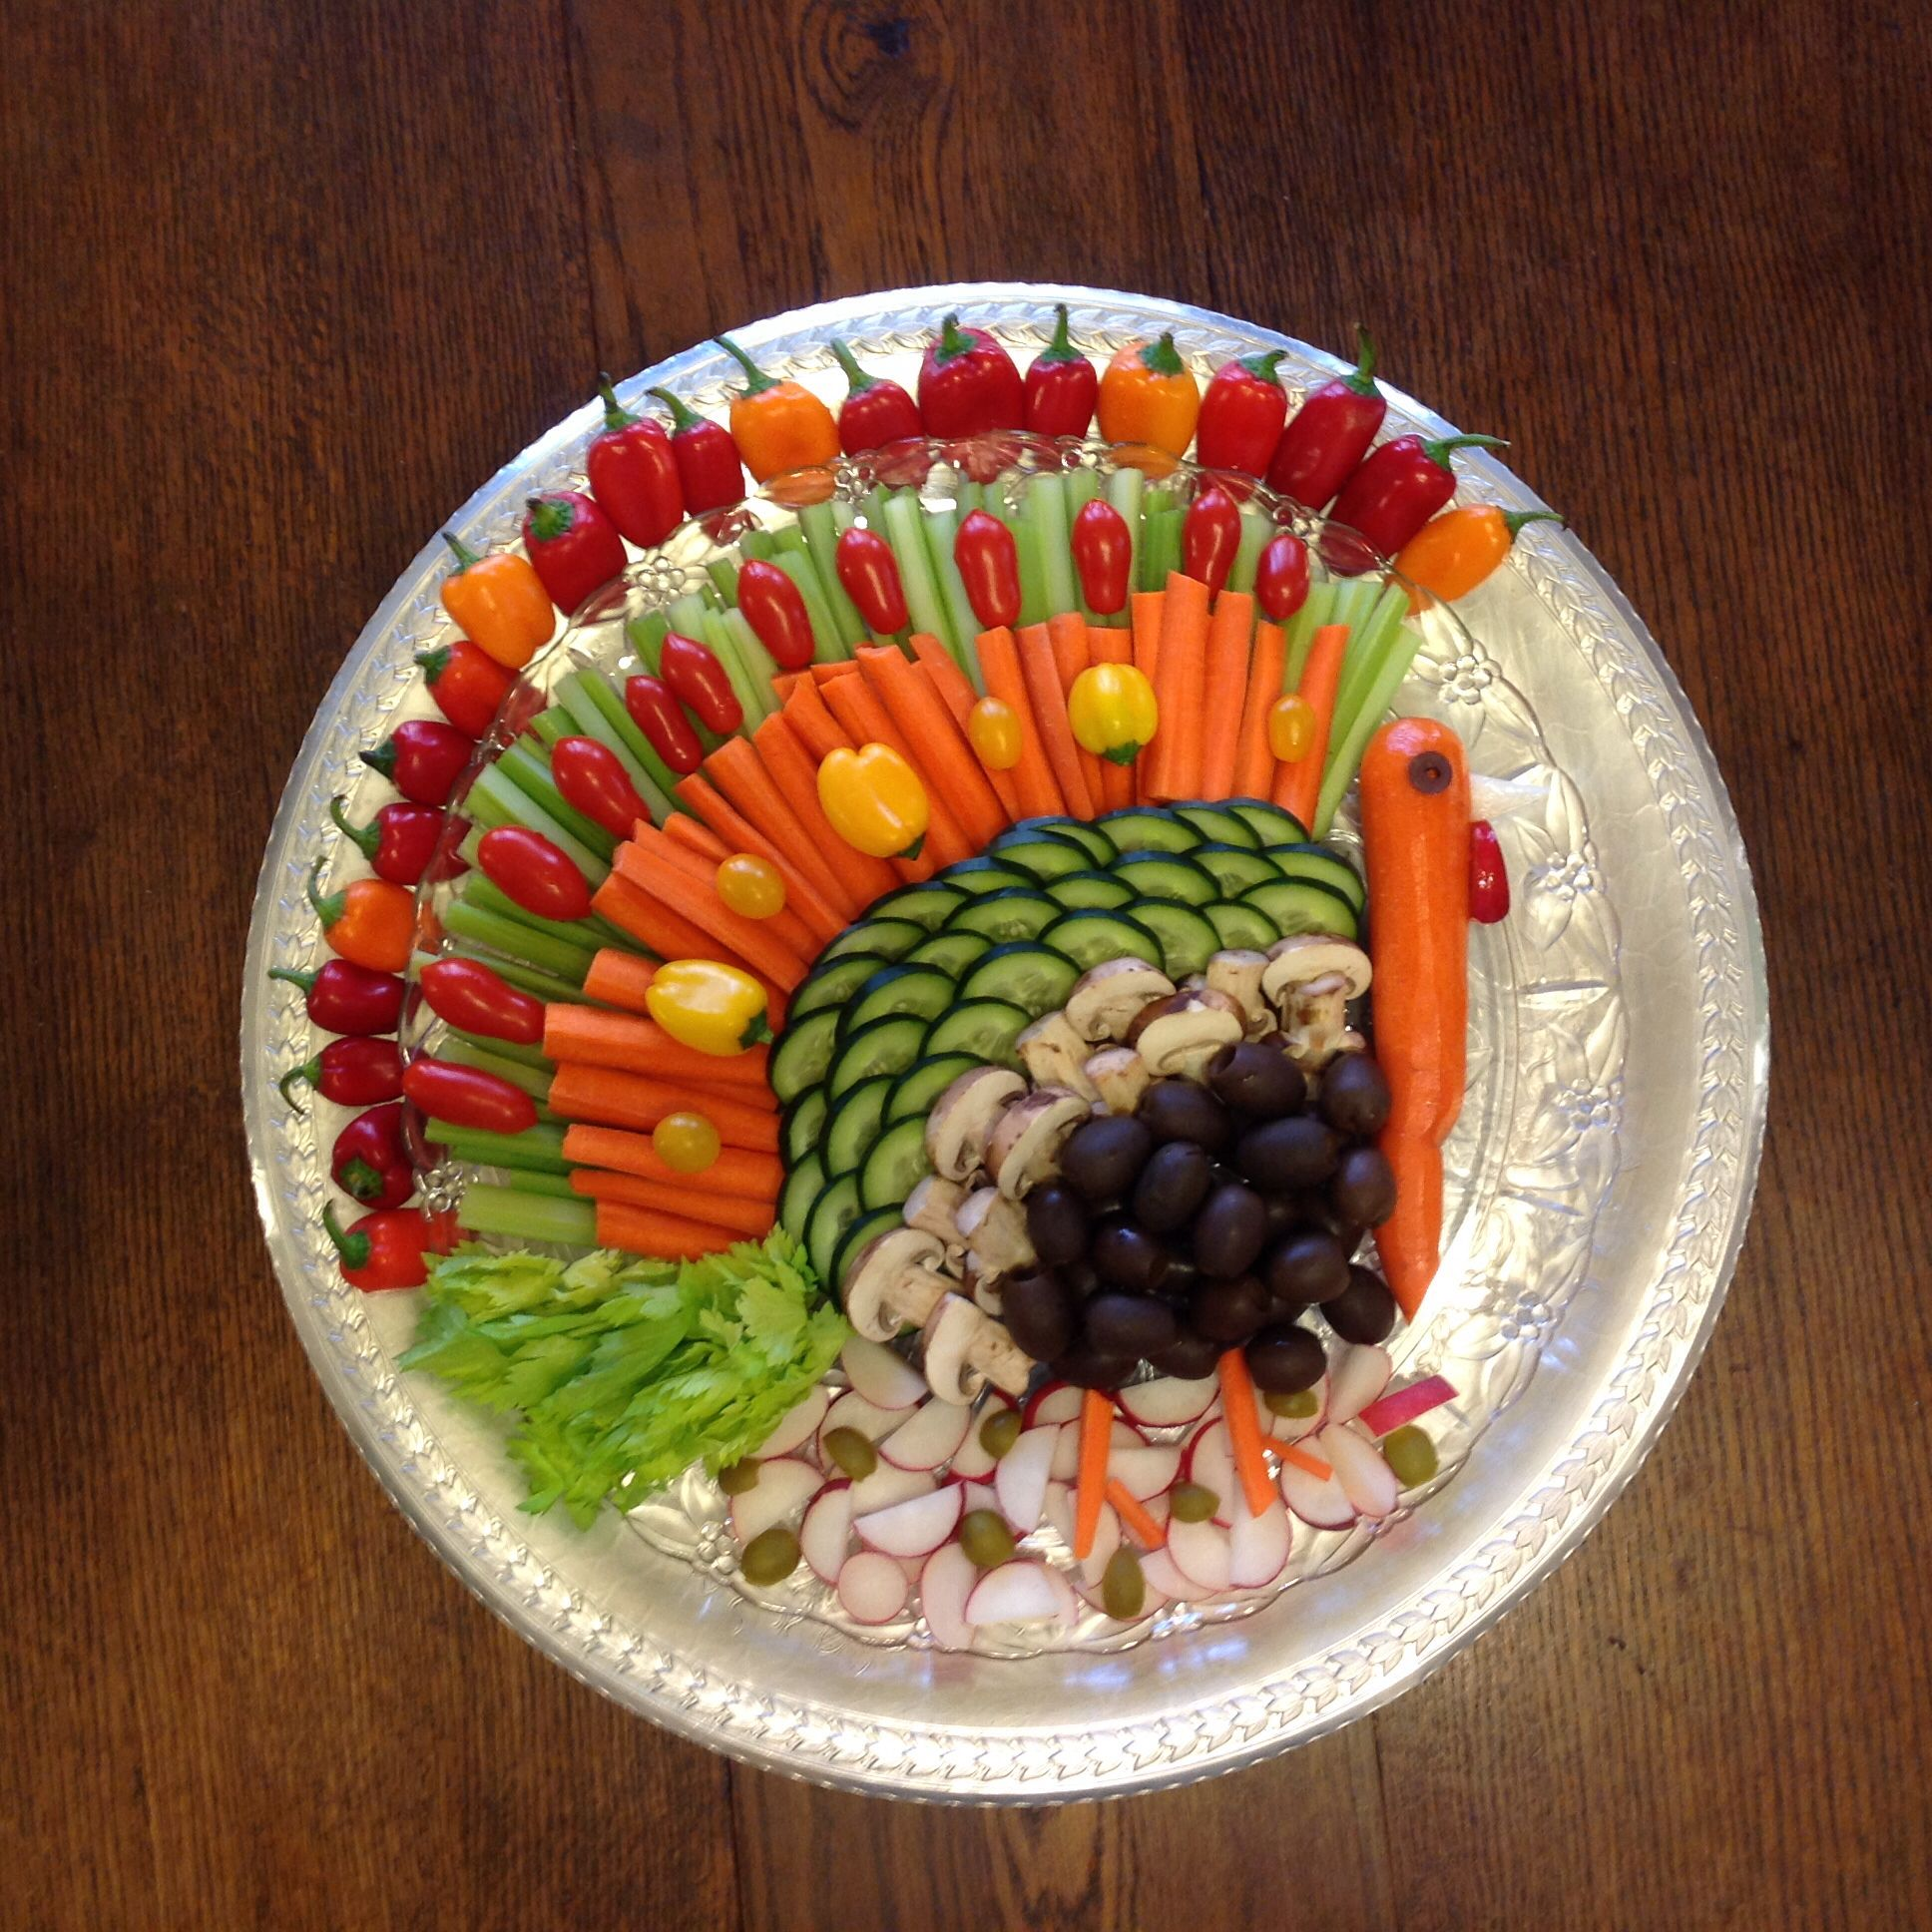 Decorative Relish Tray For Thanksgiving Amazing Thanksgiving Vegetable Platter Idea I Used Tomatoes Celery Review